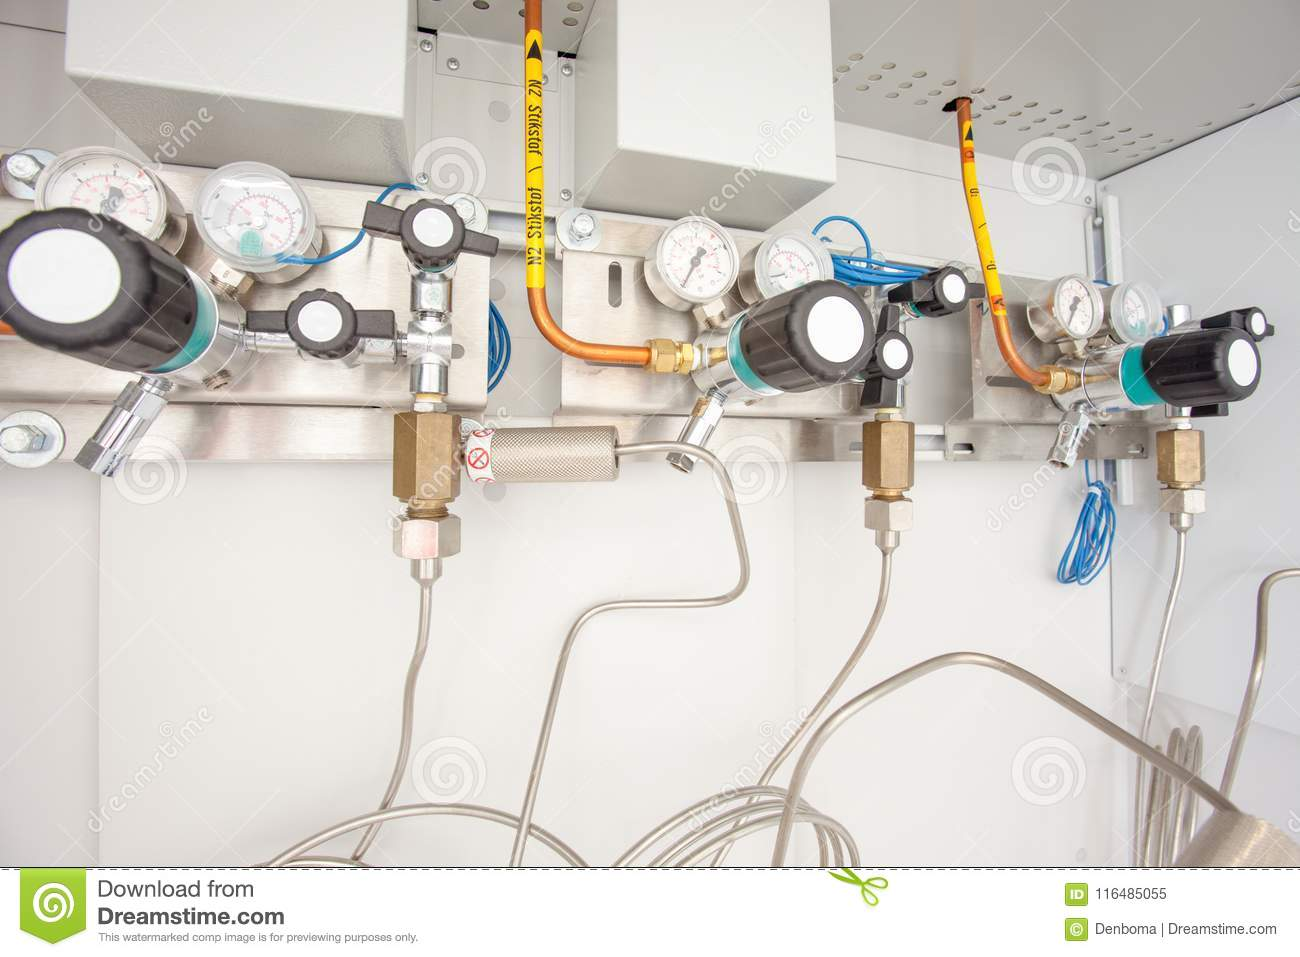 Cupboard For Industrial Gas Bottles Stock Image Image Of